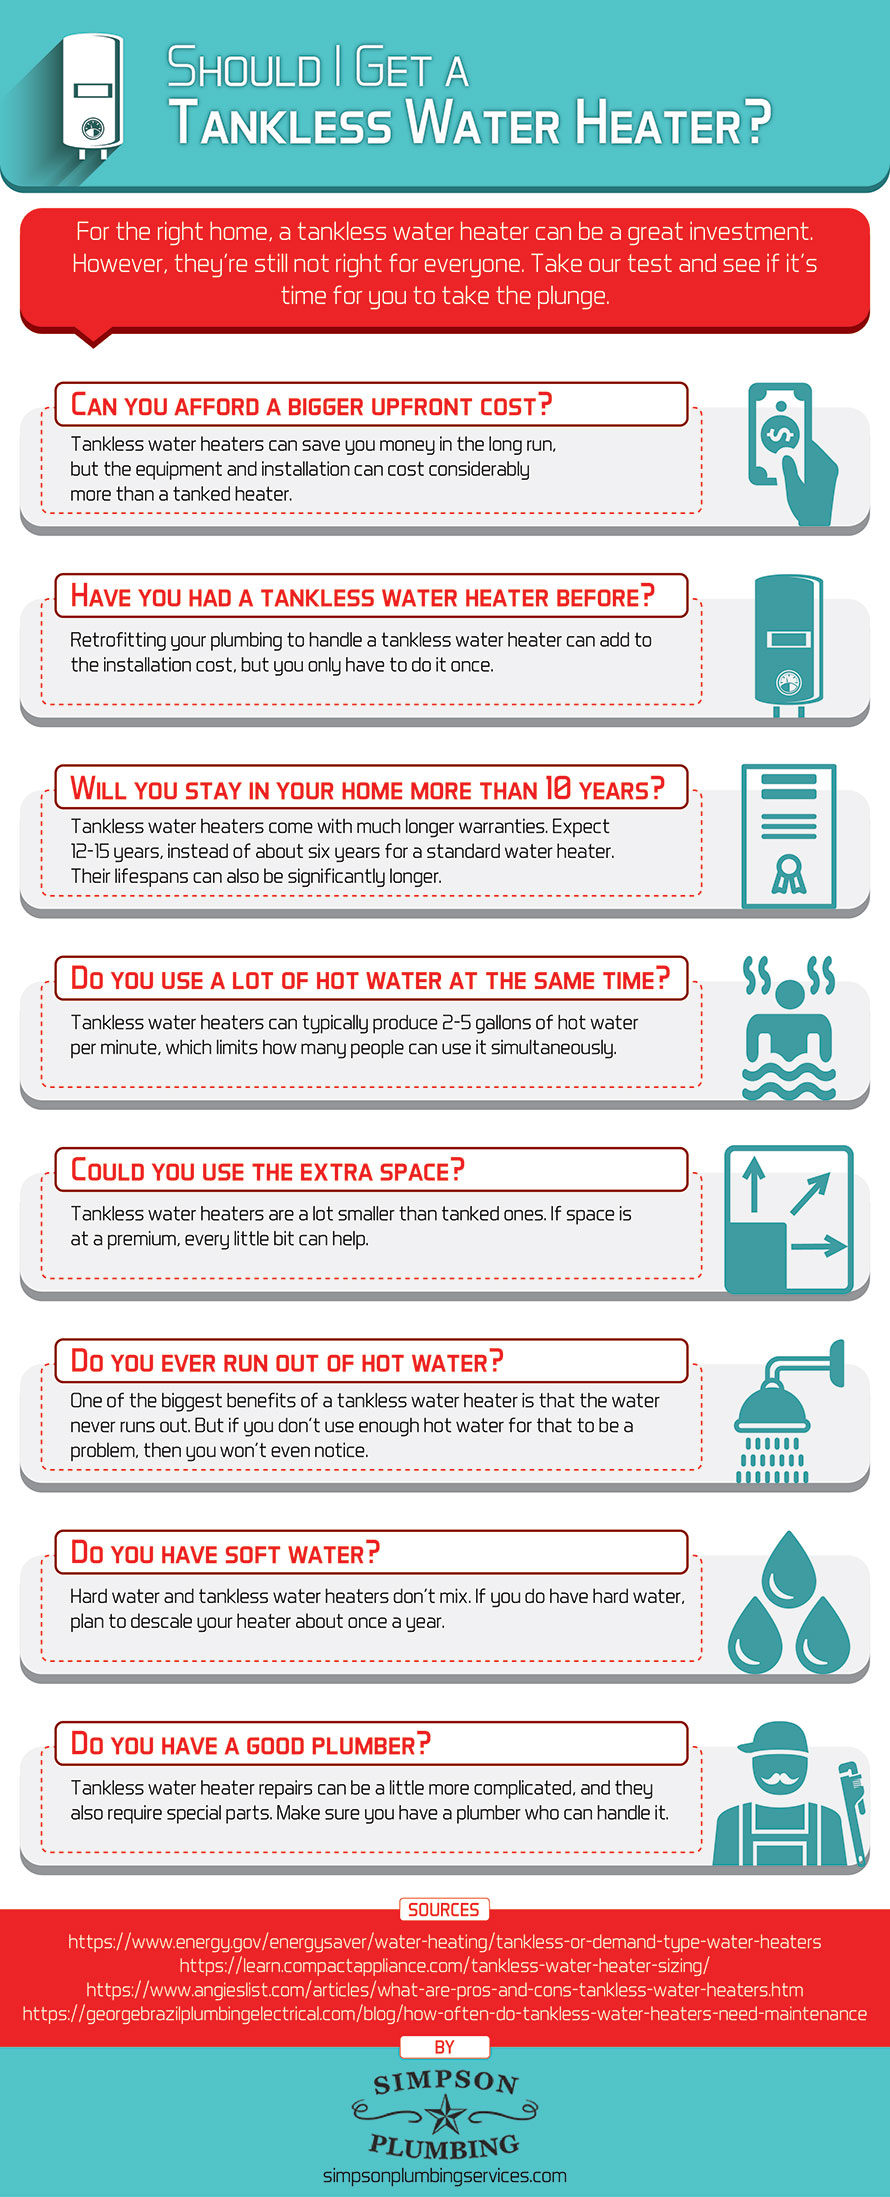 should-I-get-a-tankless-water-heater-infographic-plaza